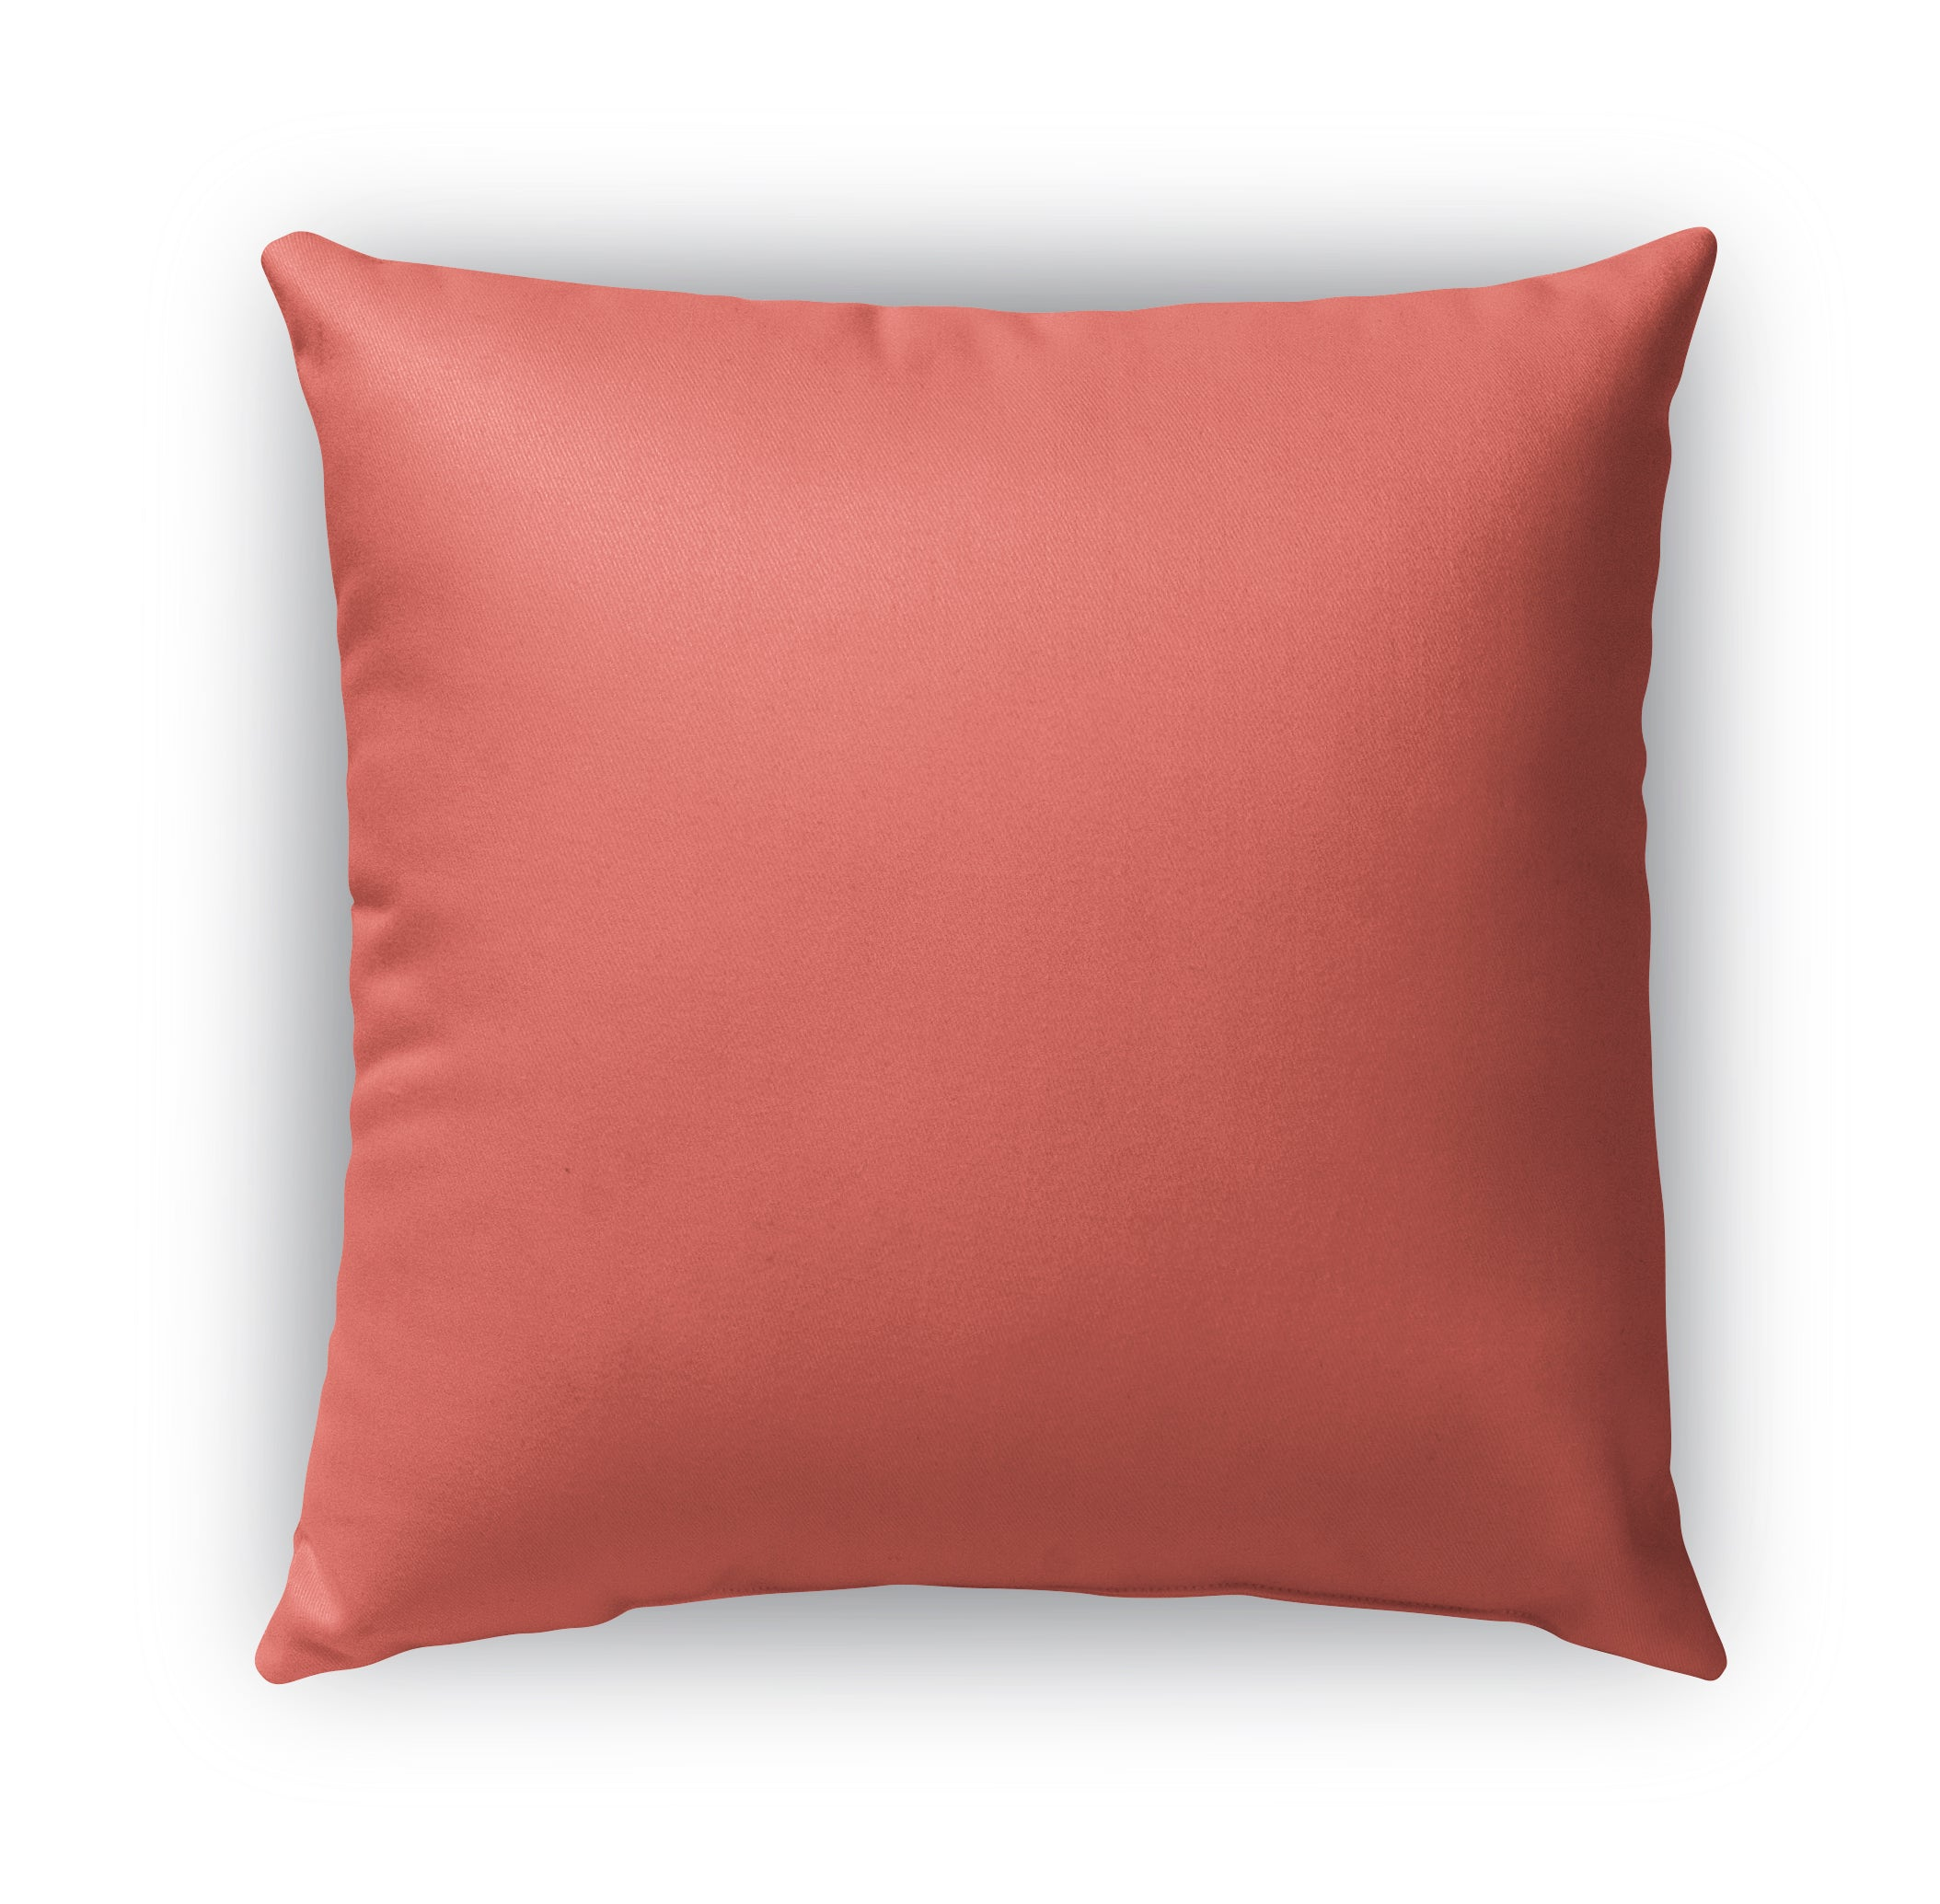 SEVENTIES SECOND COLOR WAY Indoor|Outdoor Pillow By Michelle Parascandolo